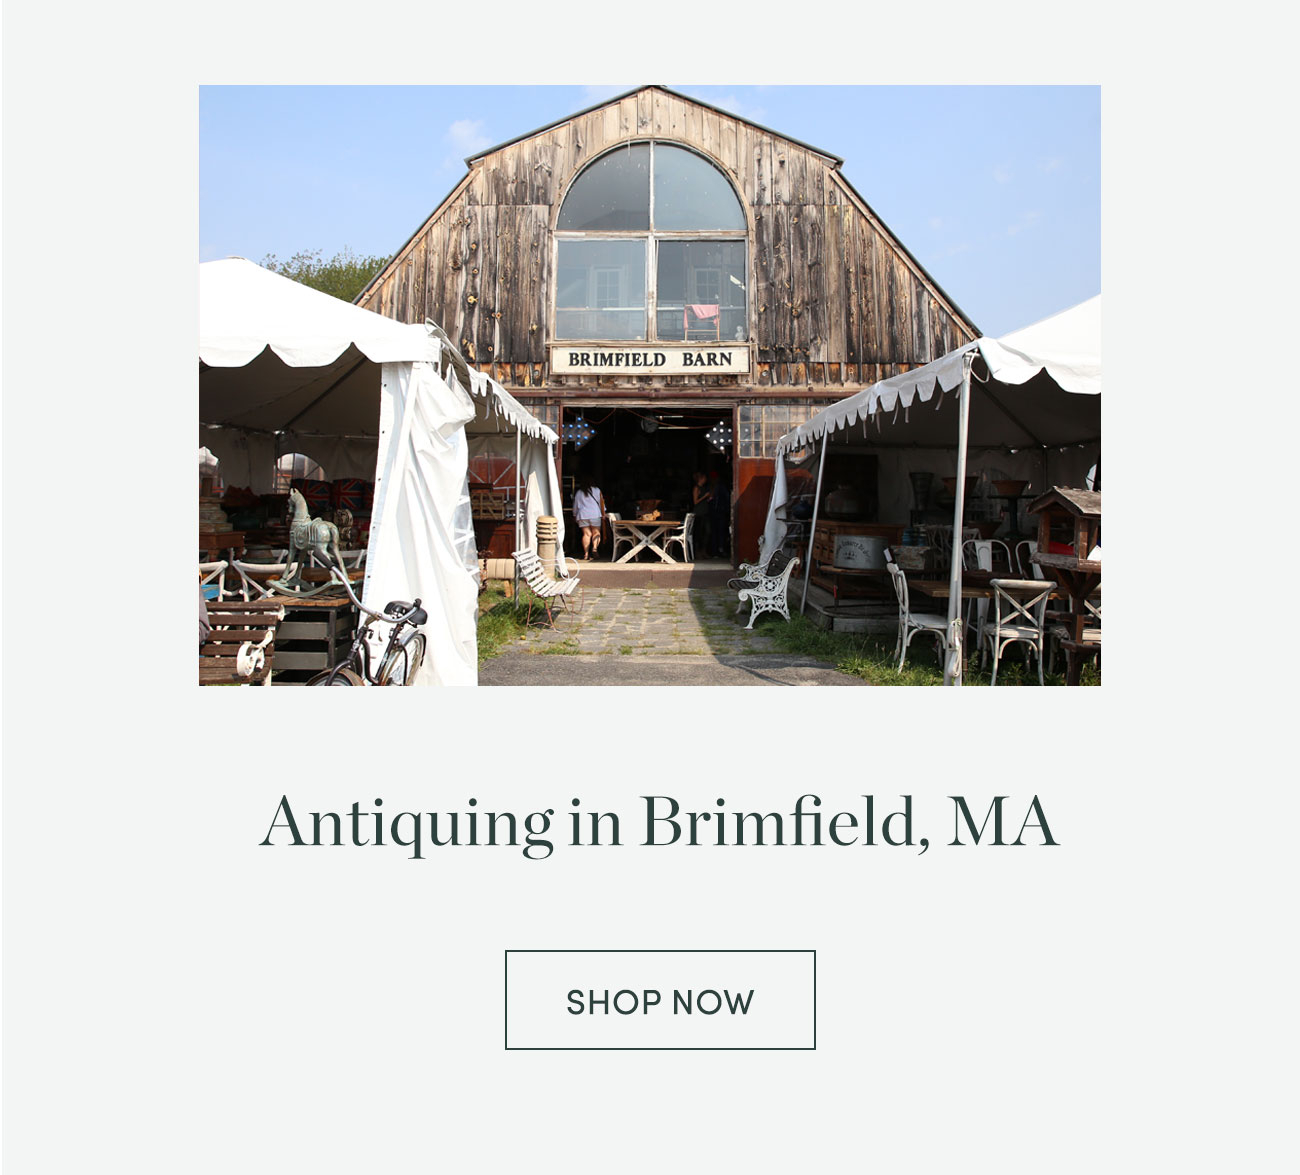 Antiquing in Brimfield, MA